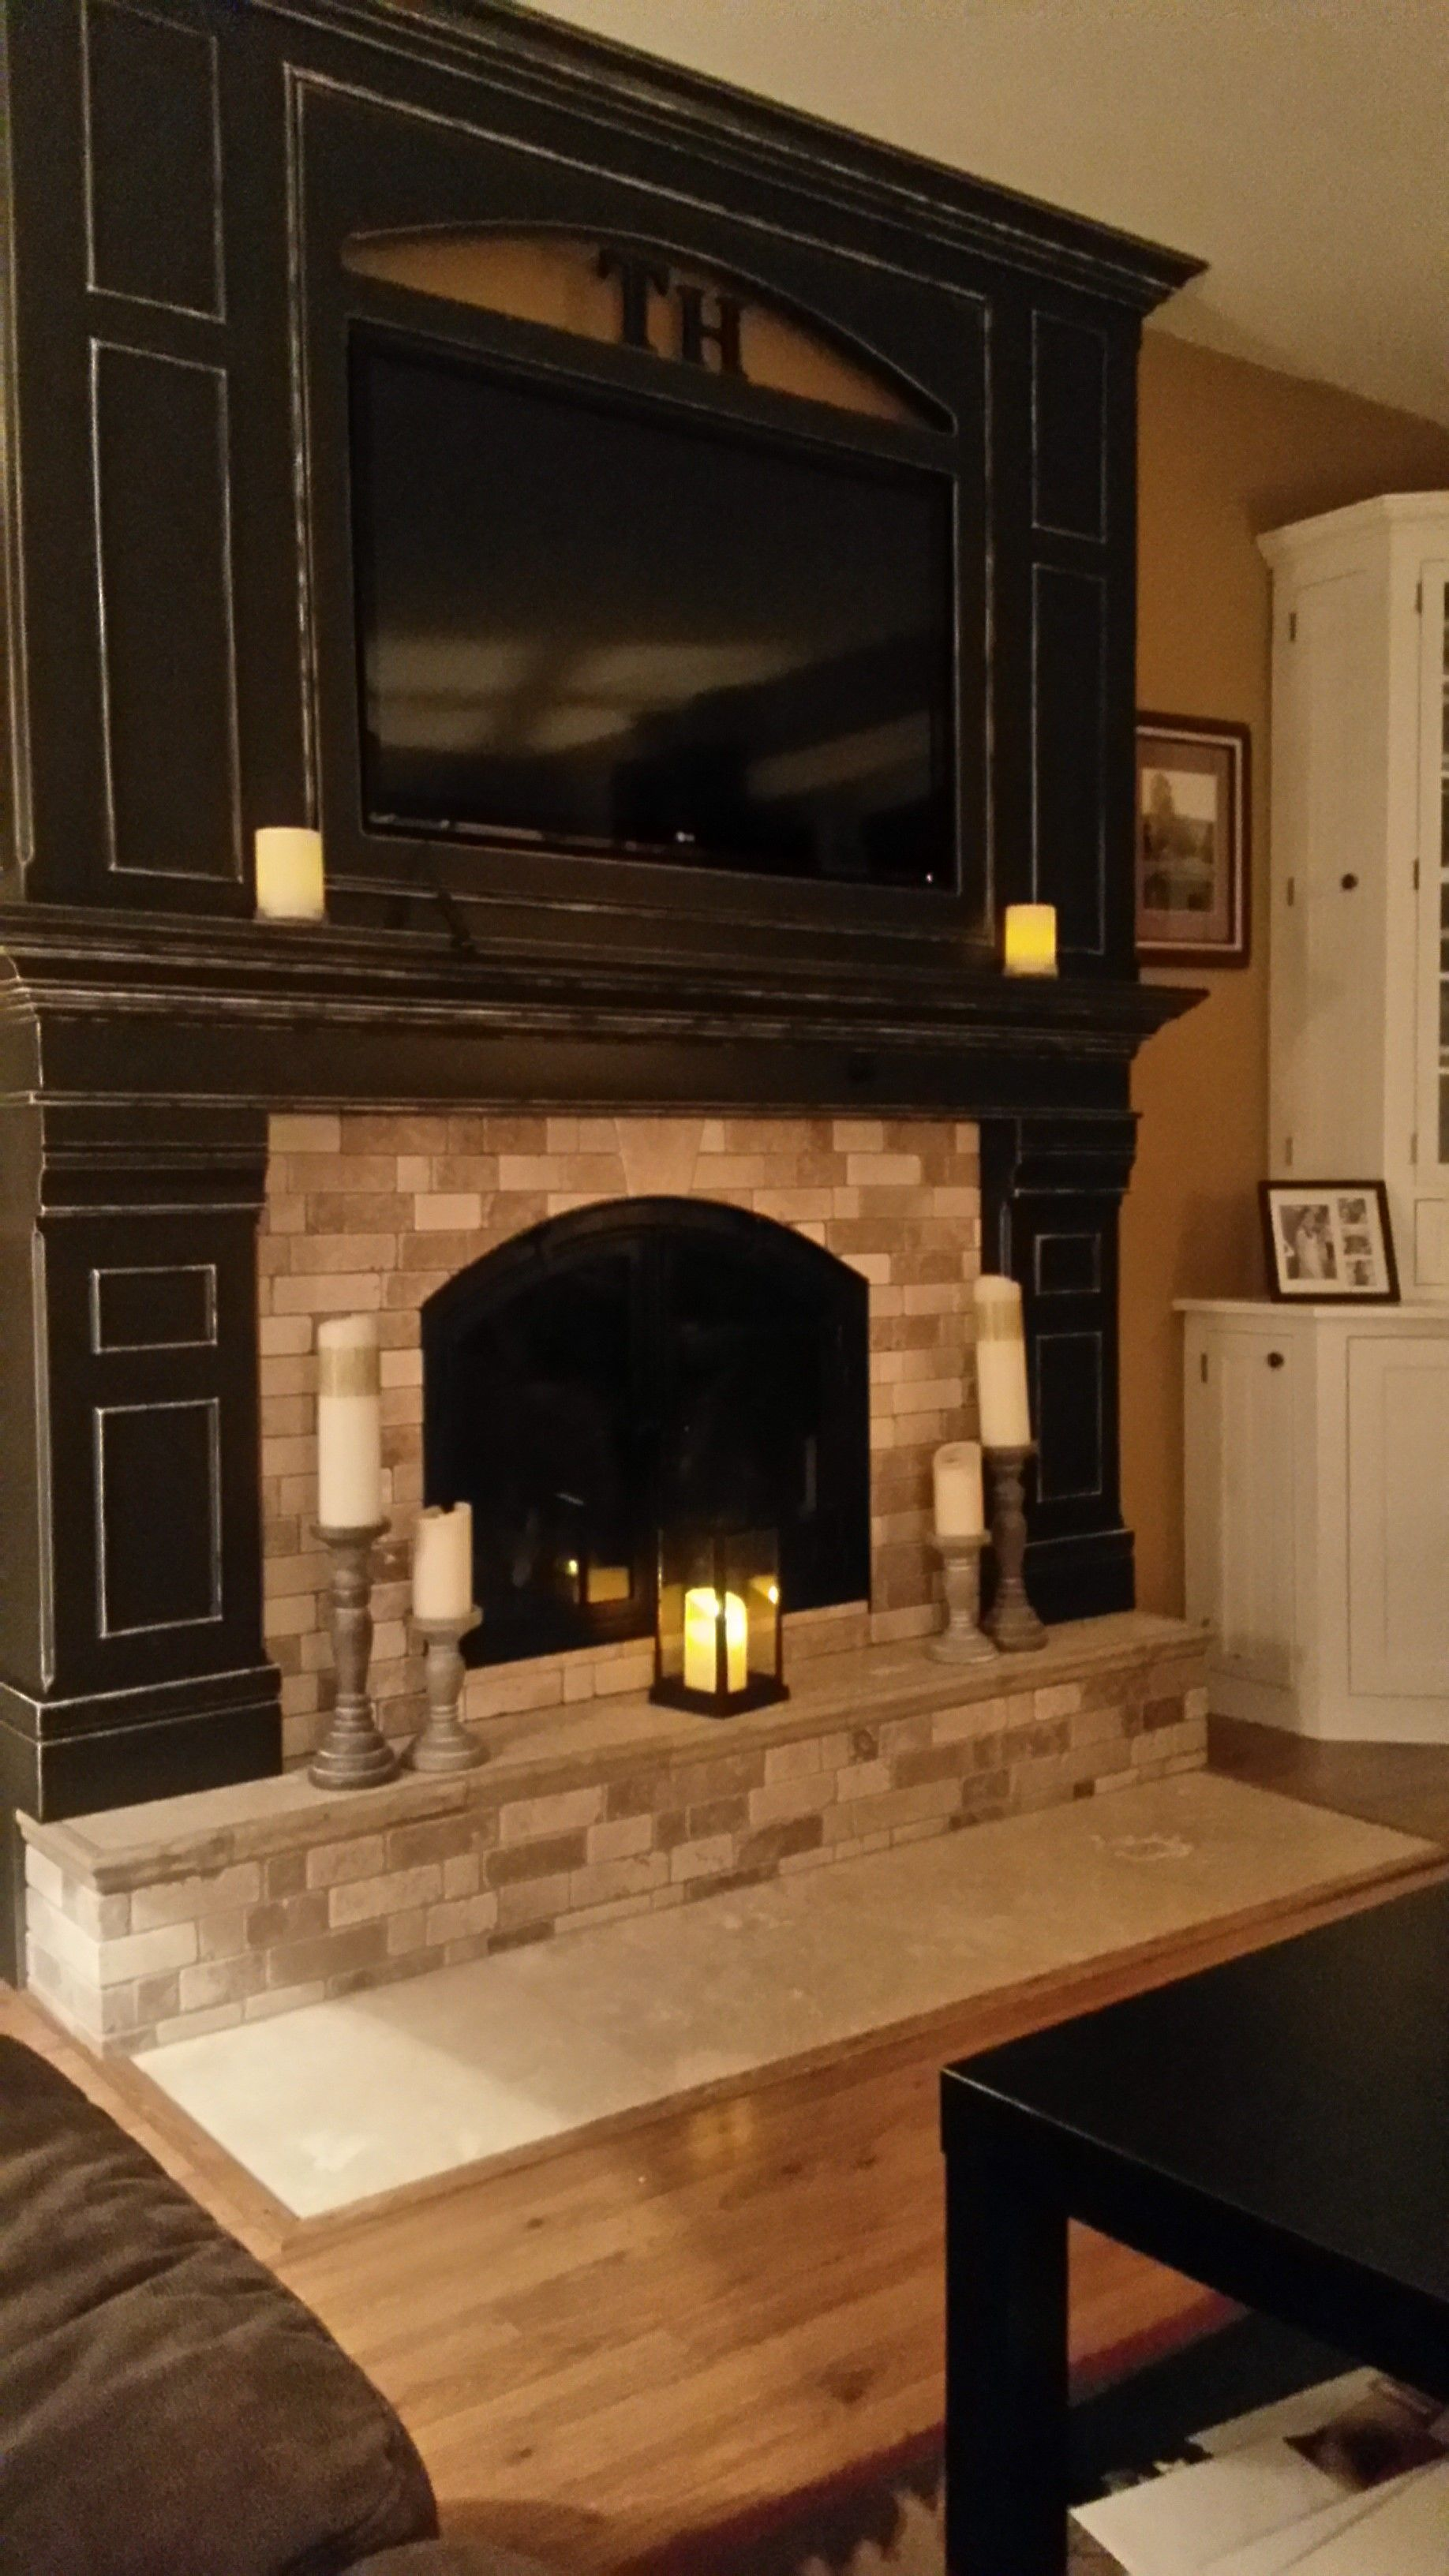 Traditional fireplace months of hard work come to fruition